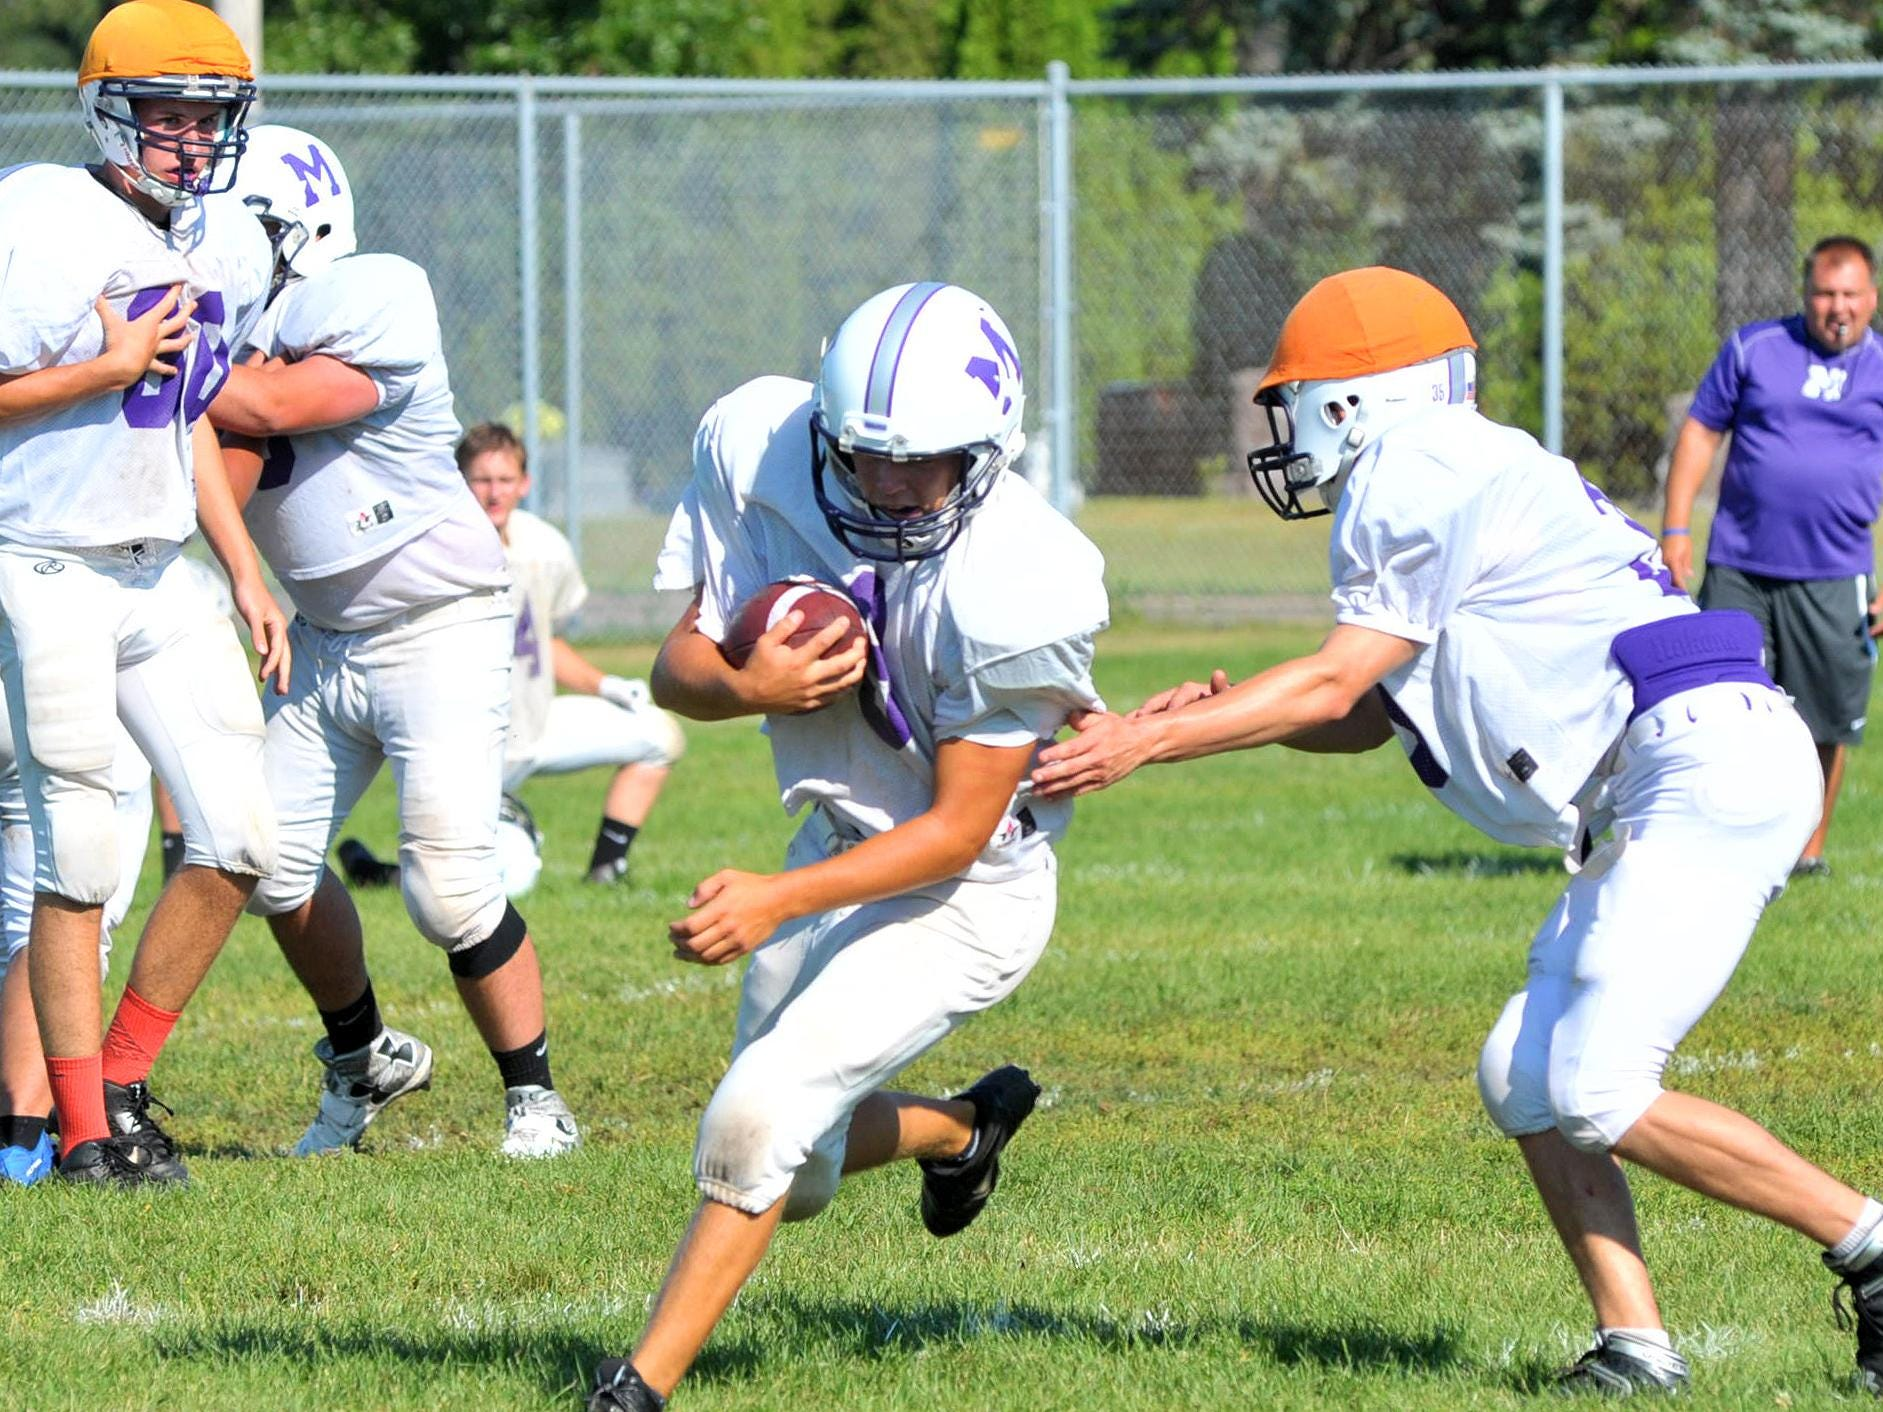 Mosinee's Landon Stepan(9), middle, avoids being tagged while running the ball during Monday's practice at Mosinee High School football field.